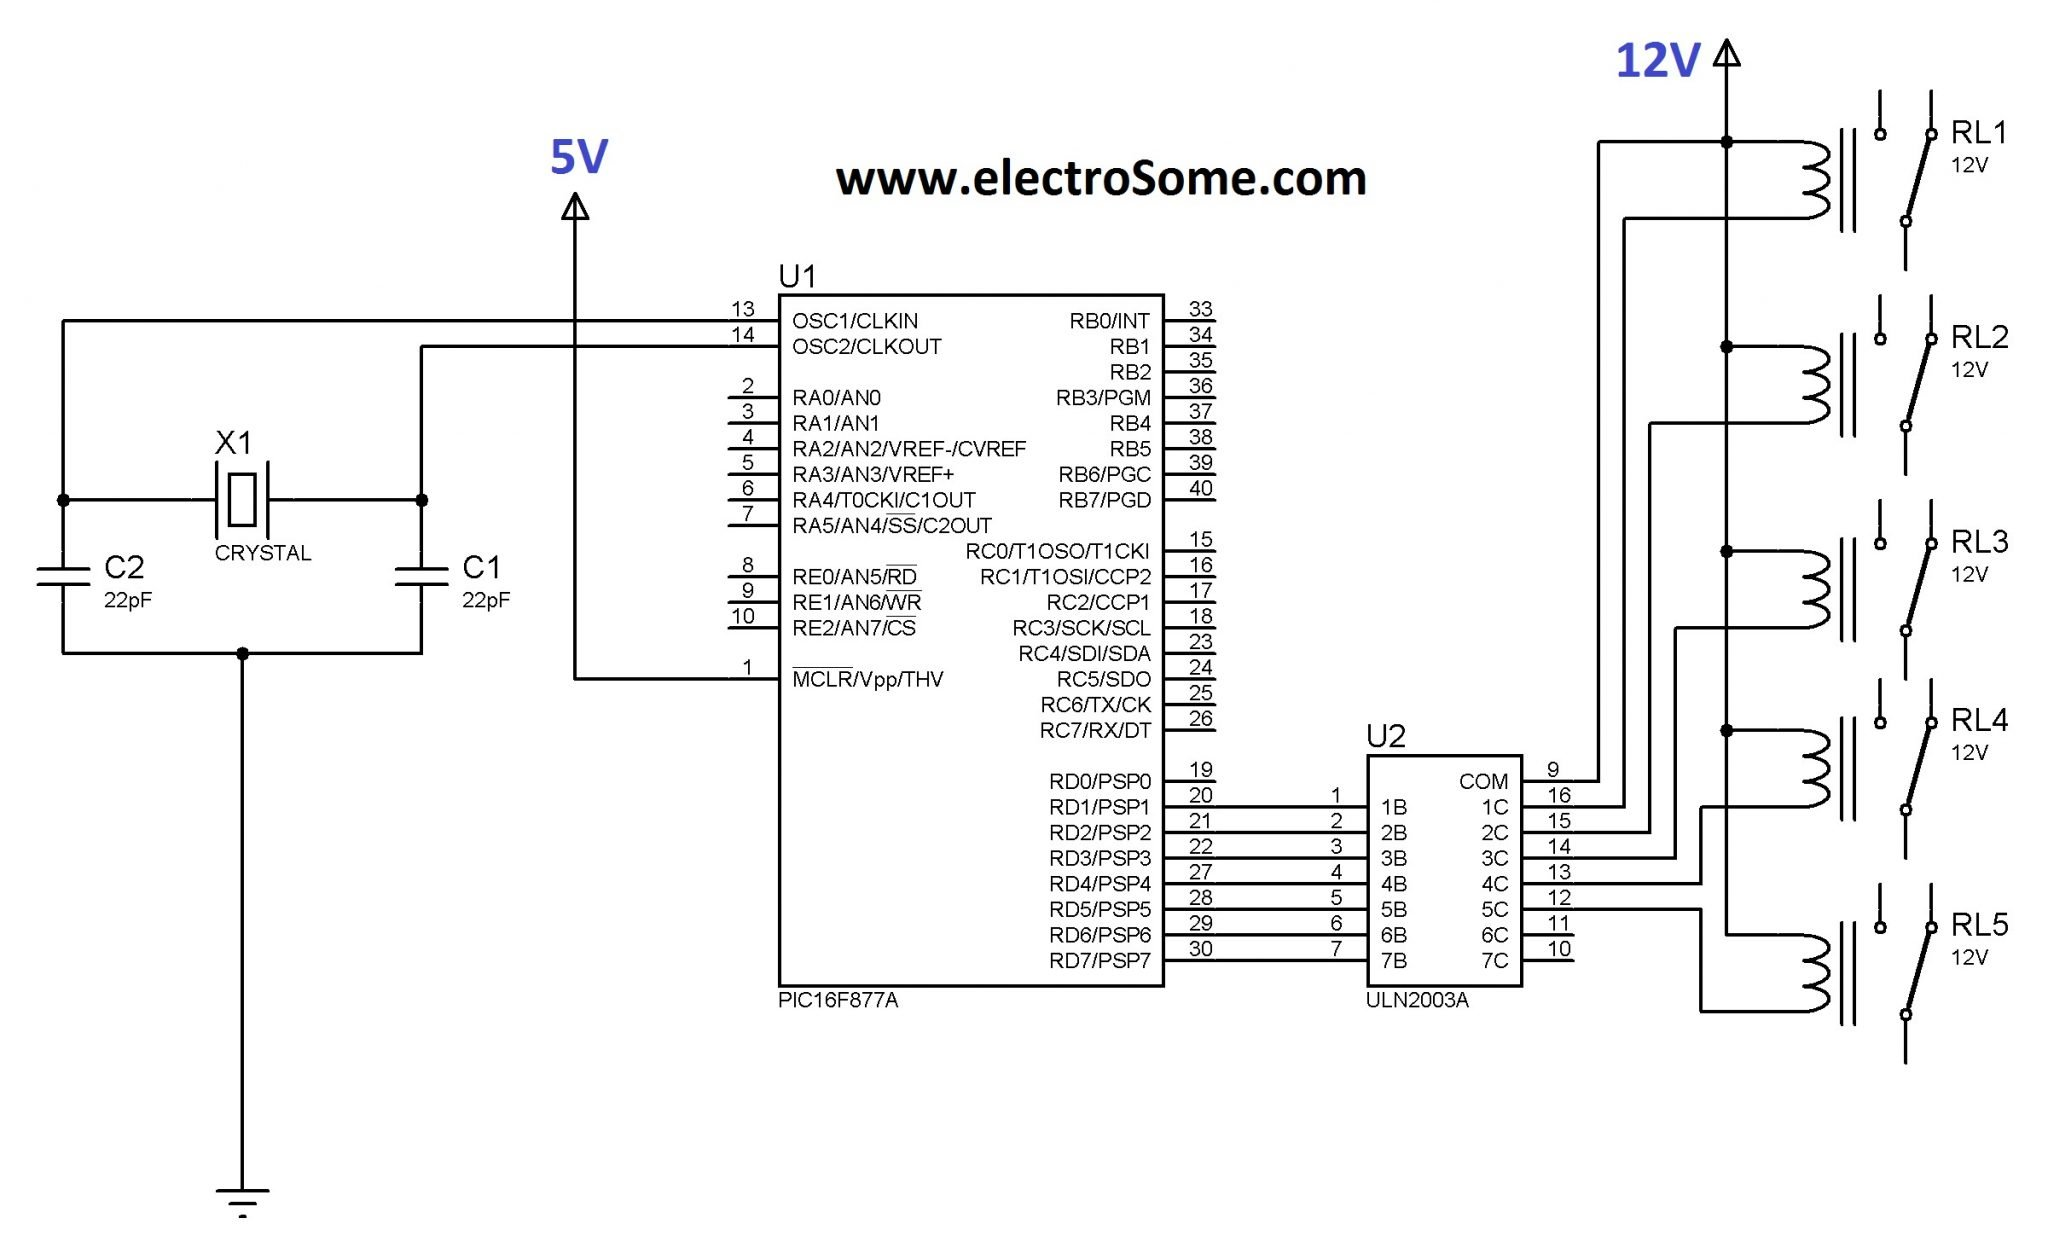 Interfacing Relay With Pic Microcontroller Mikroc Transistor Switch 12v Using Uln2003